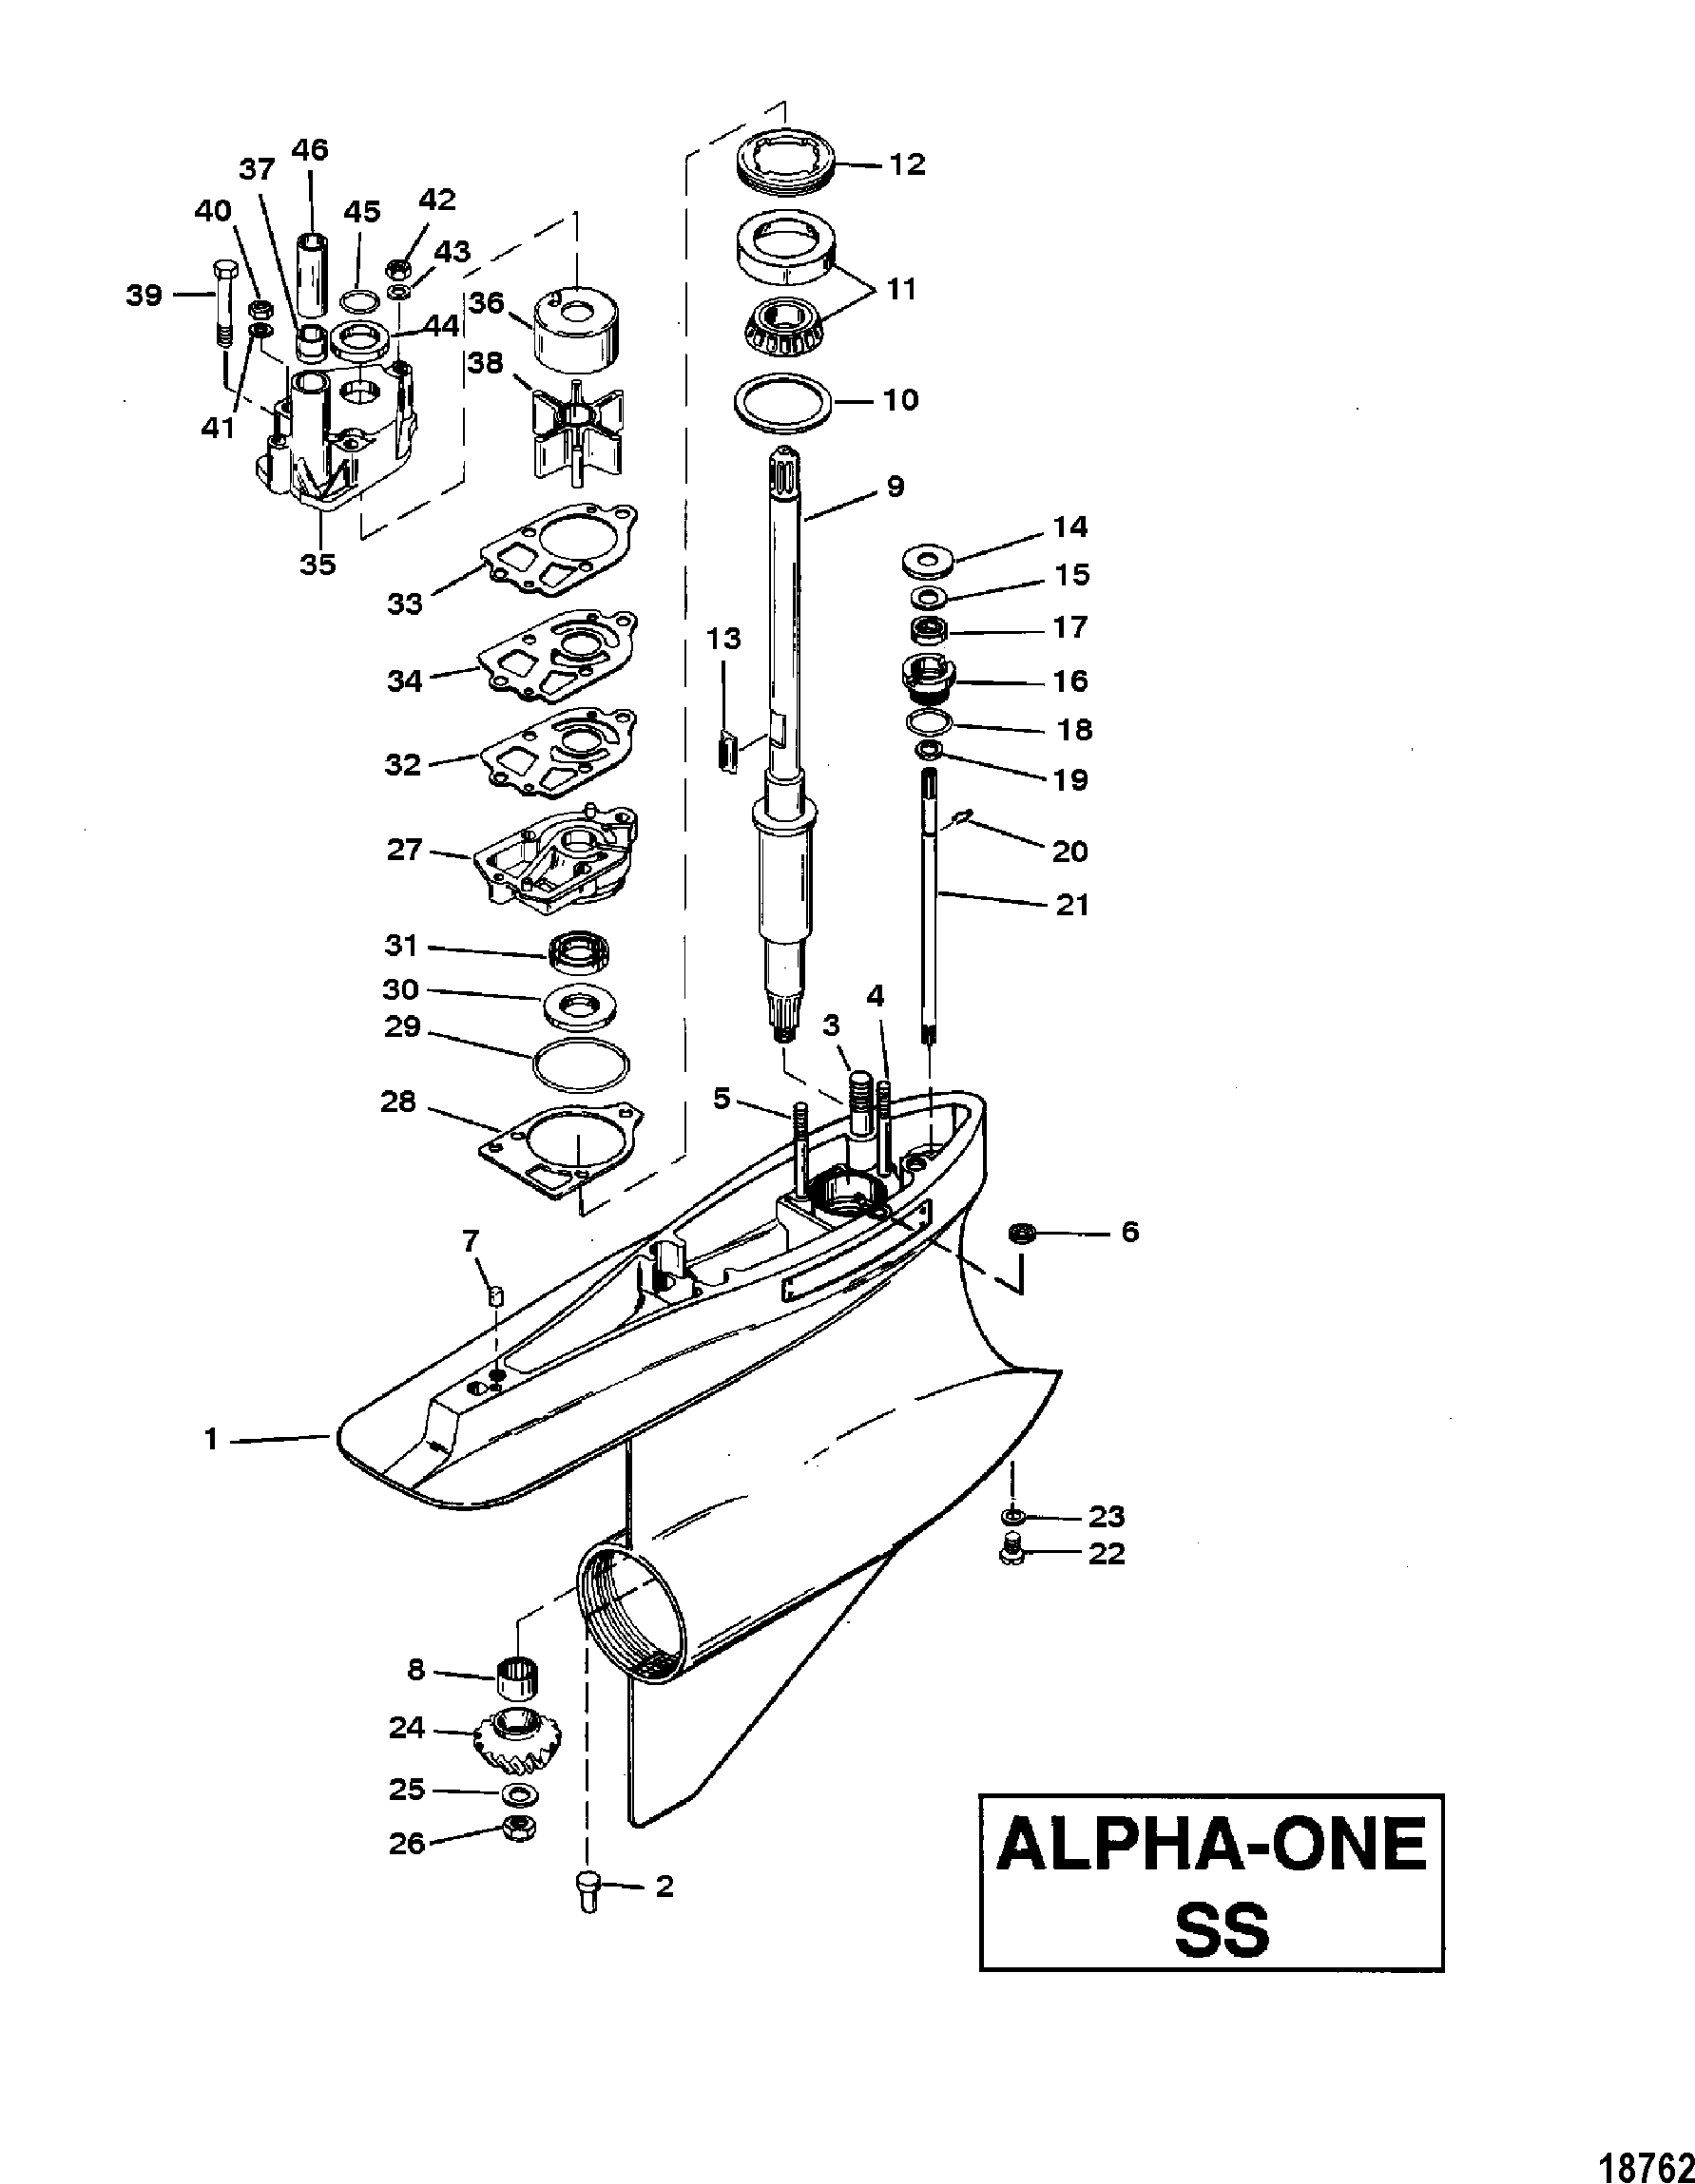 GEAR HOUSING ASSY DRIVESHAFT ALPHA ONE-SS FOR MERCRUISER